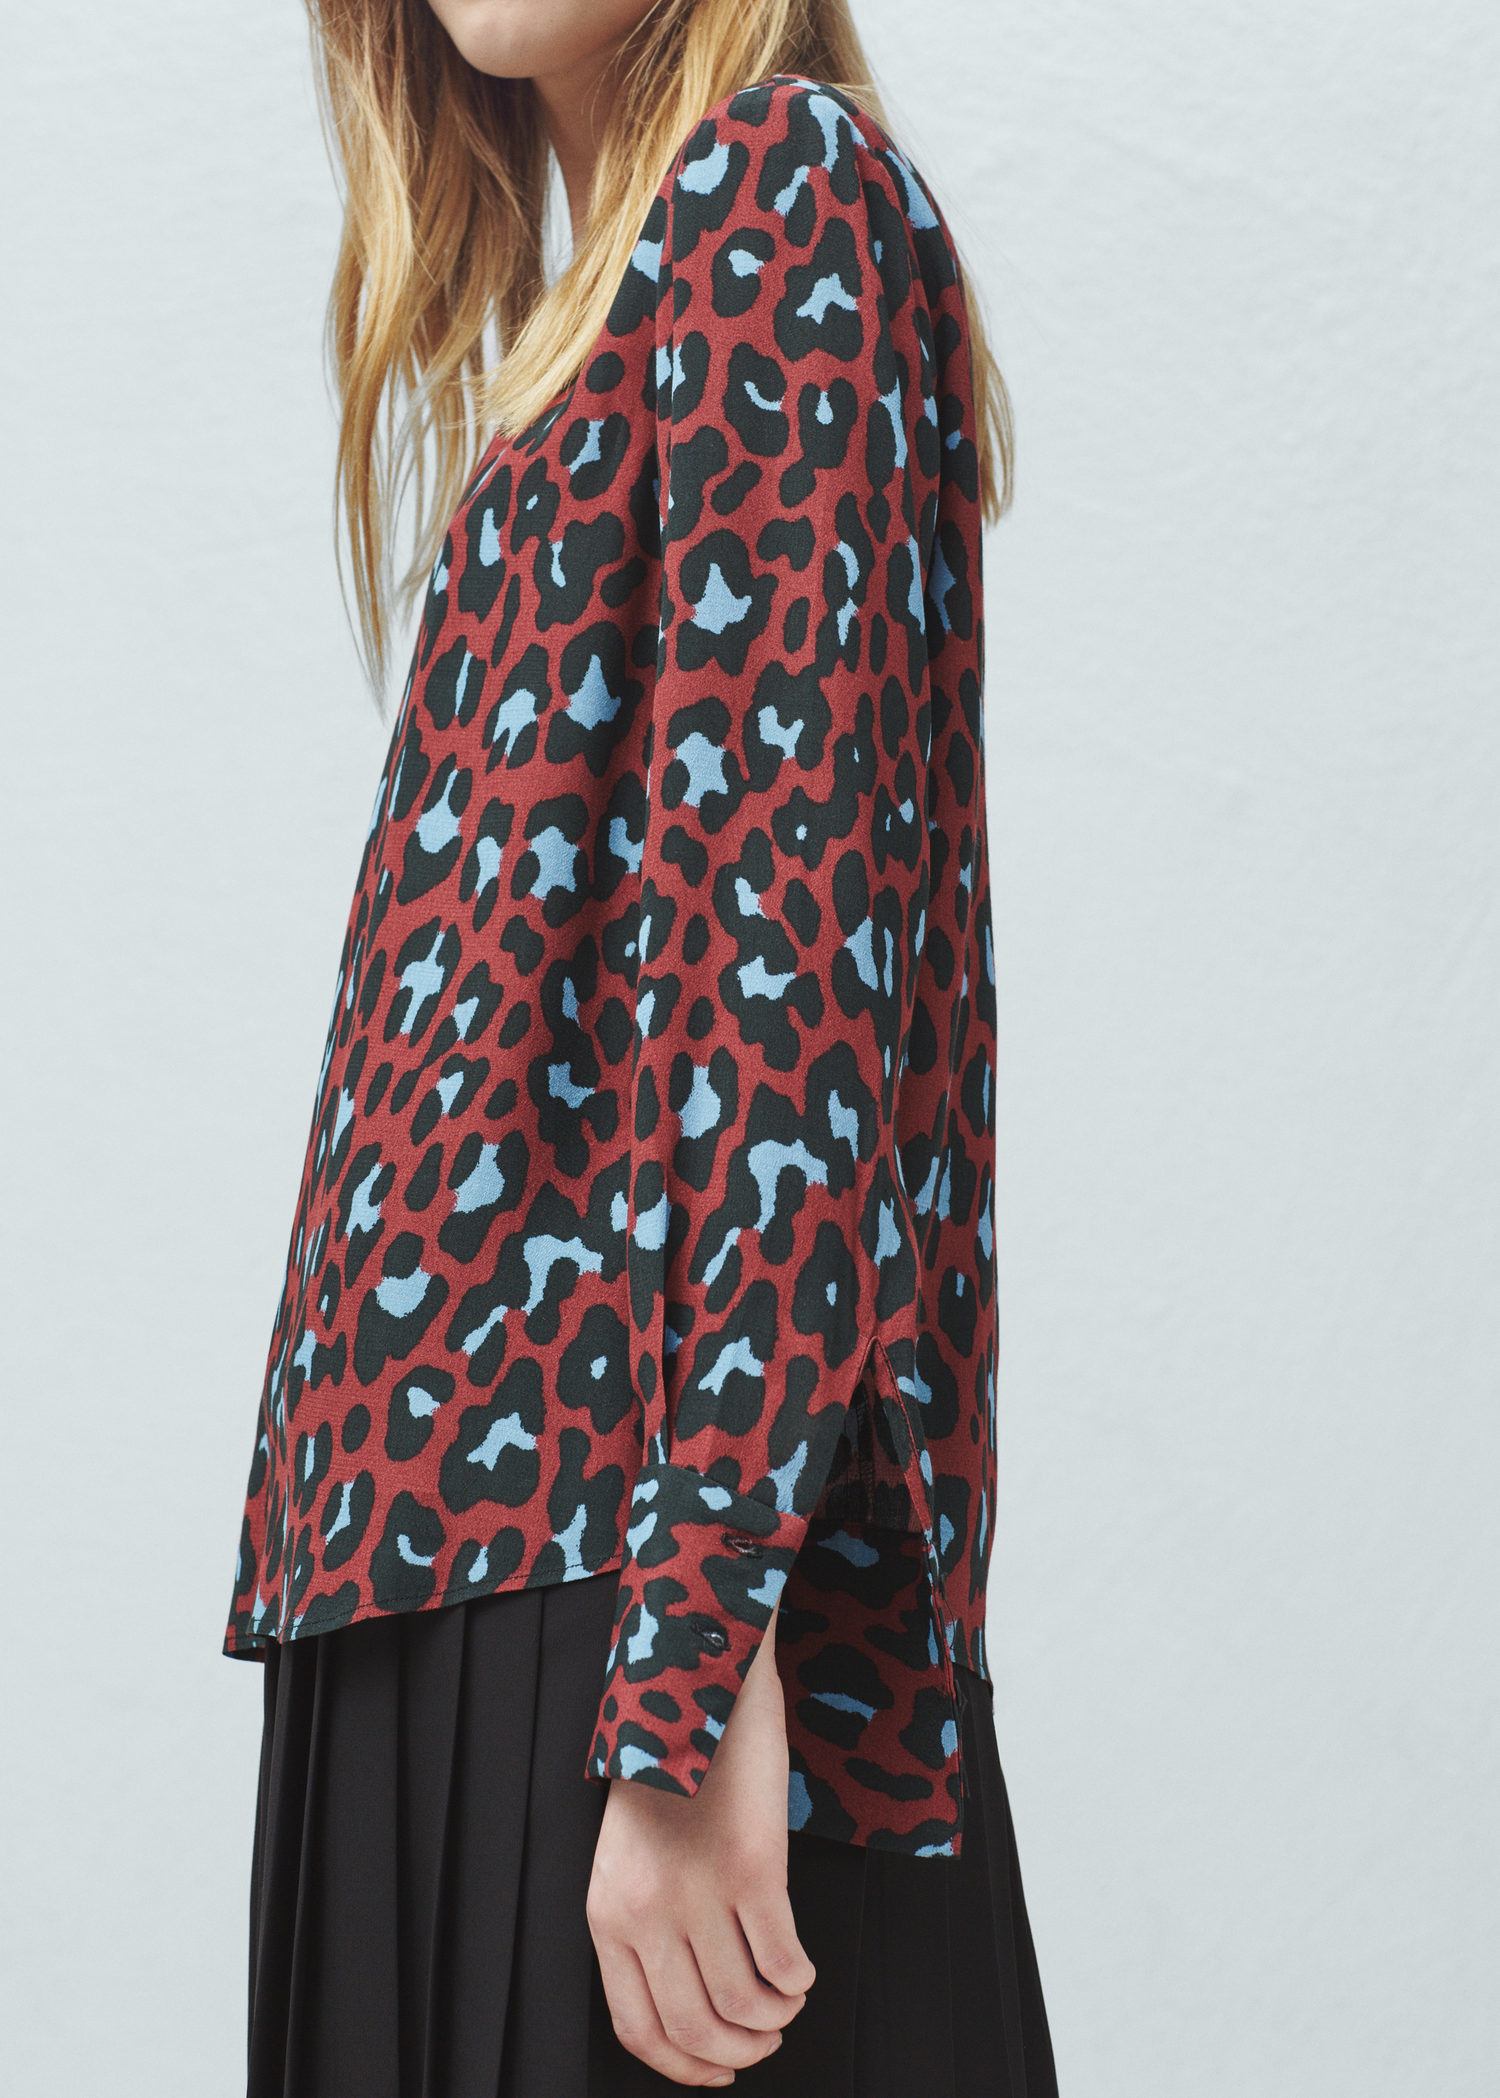 8ade0ded0521a2 Lyst - Mango Animal Print Blouse in Red